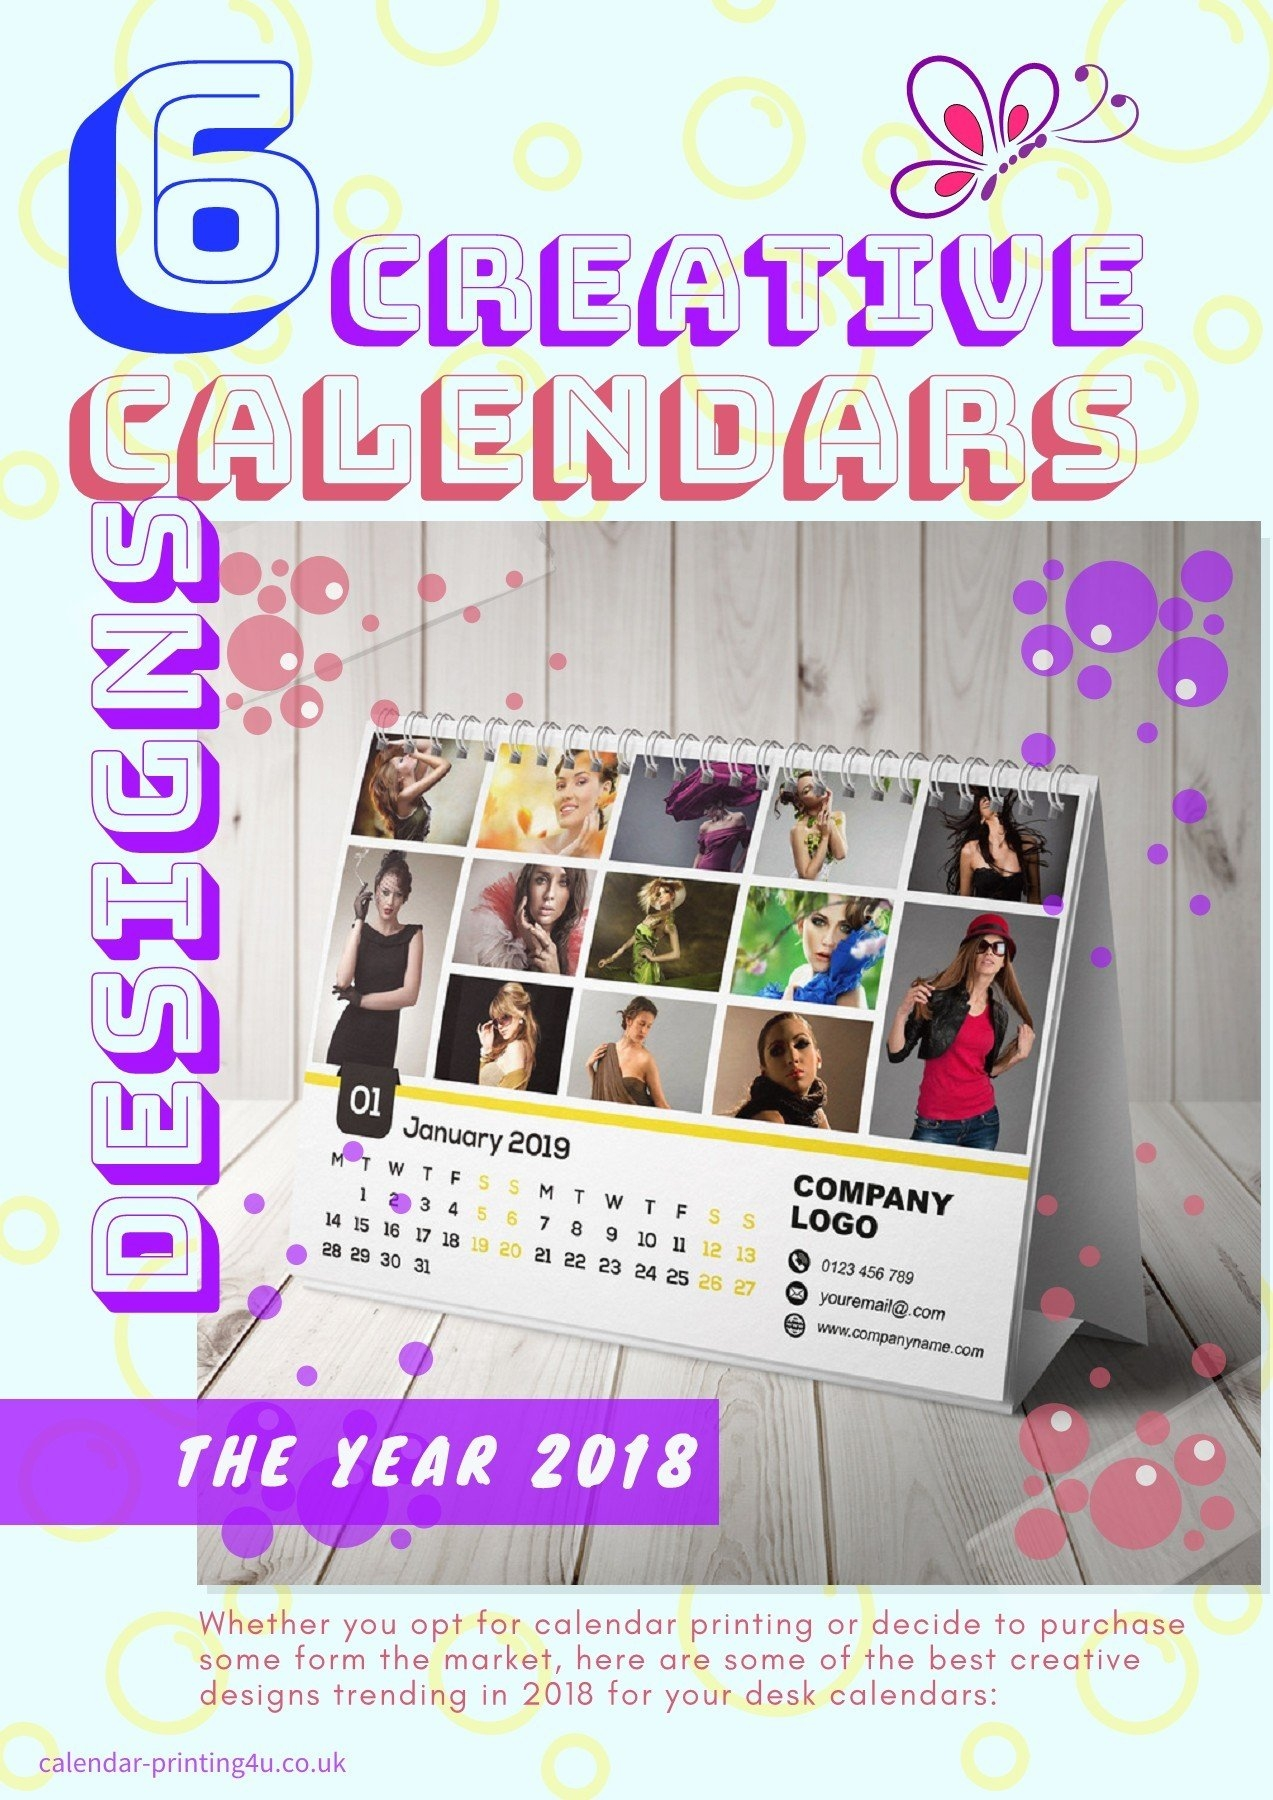 6 Creative Calendar Design Ideas For Your Desk For The Year 2019 Calendar 2019 Ideas